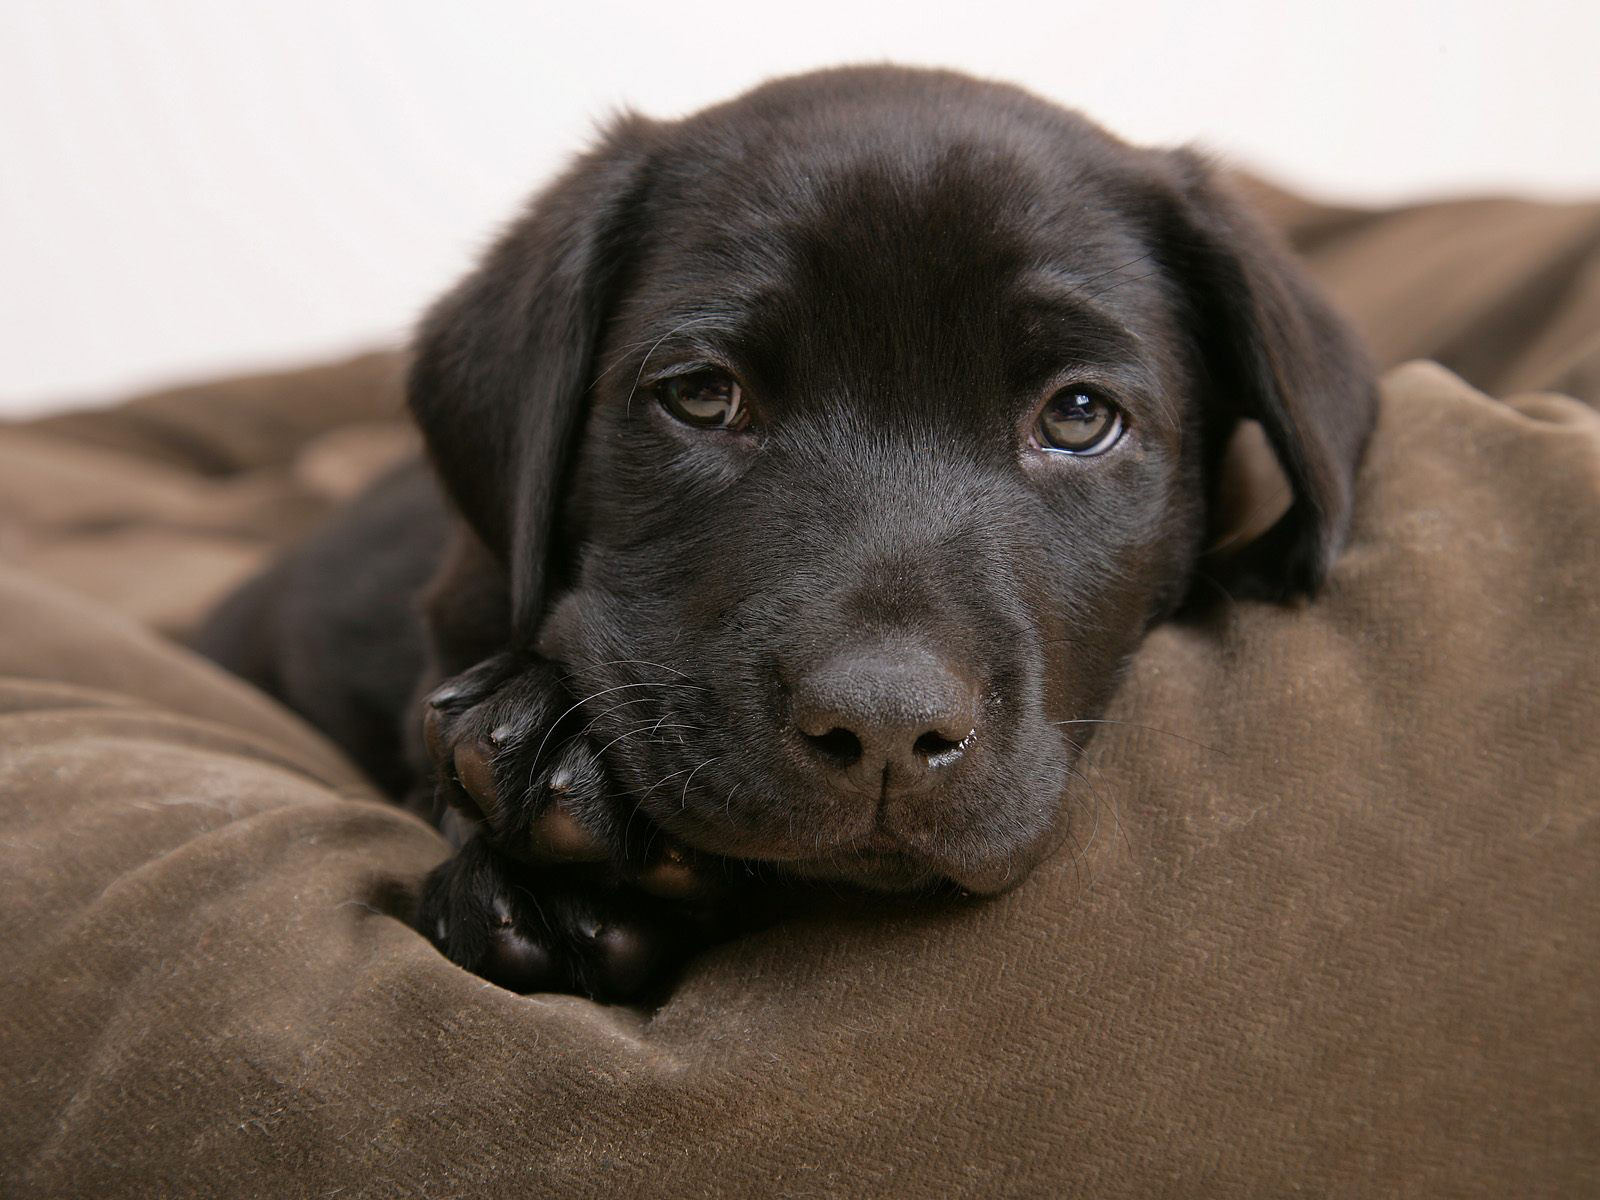 Little labrador  Puppies Wallpaper 14749010  Fanpop